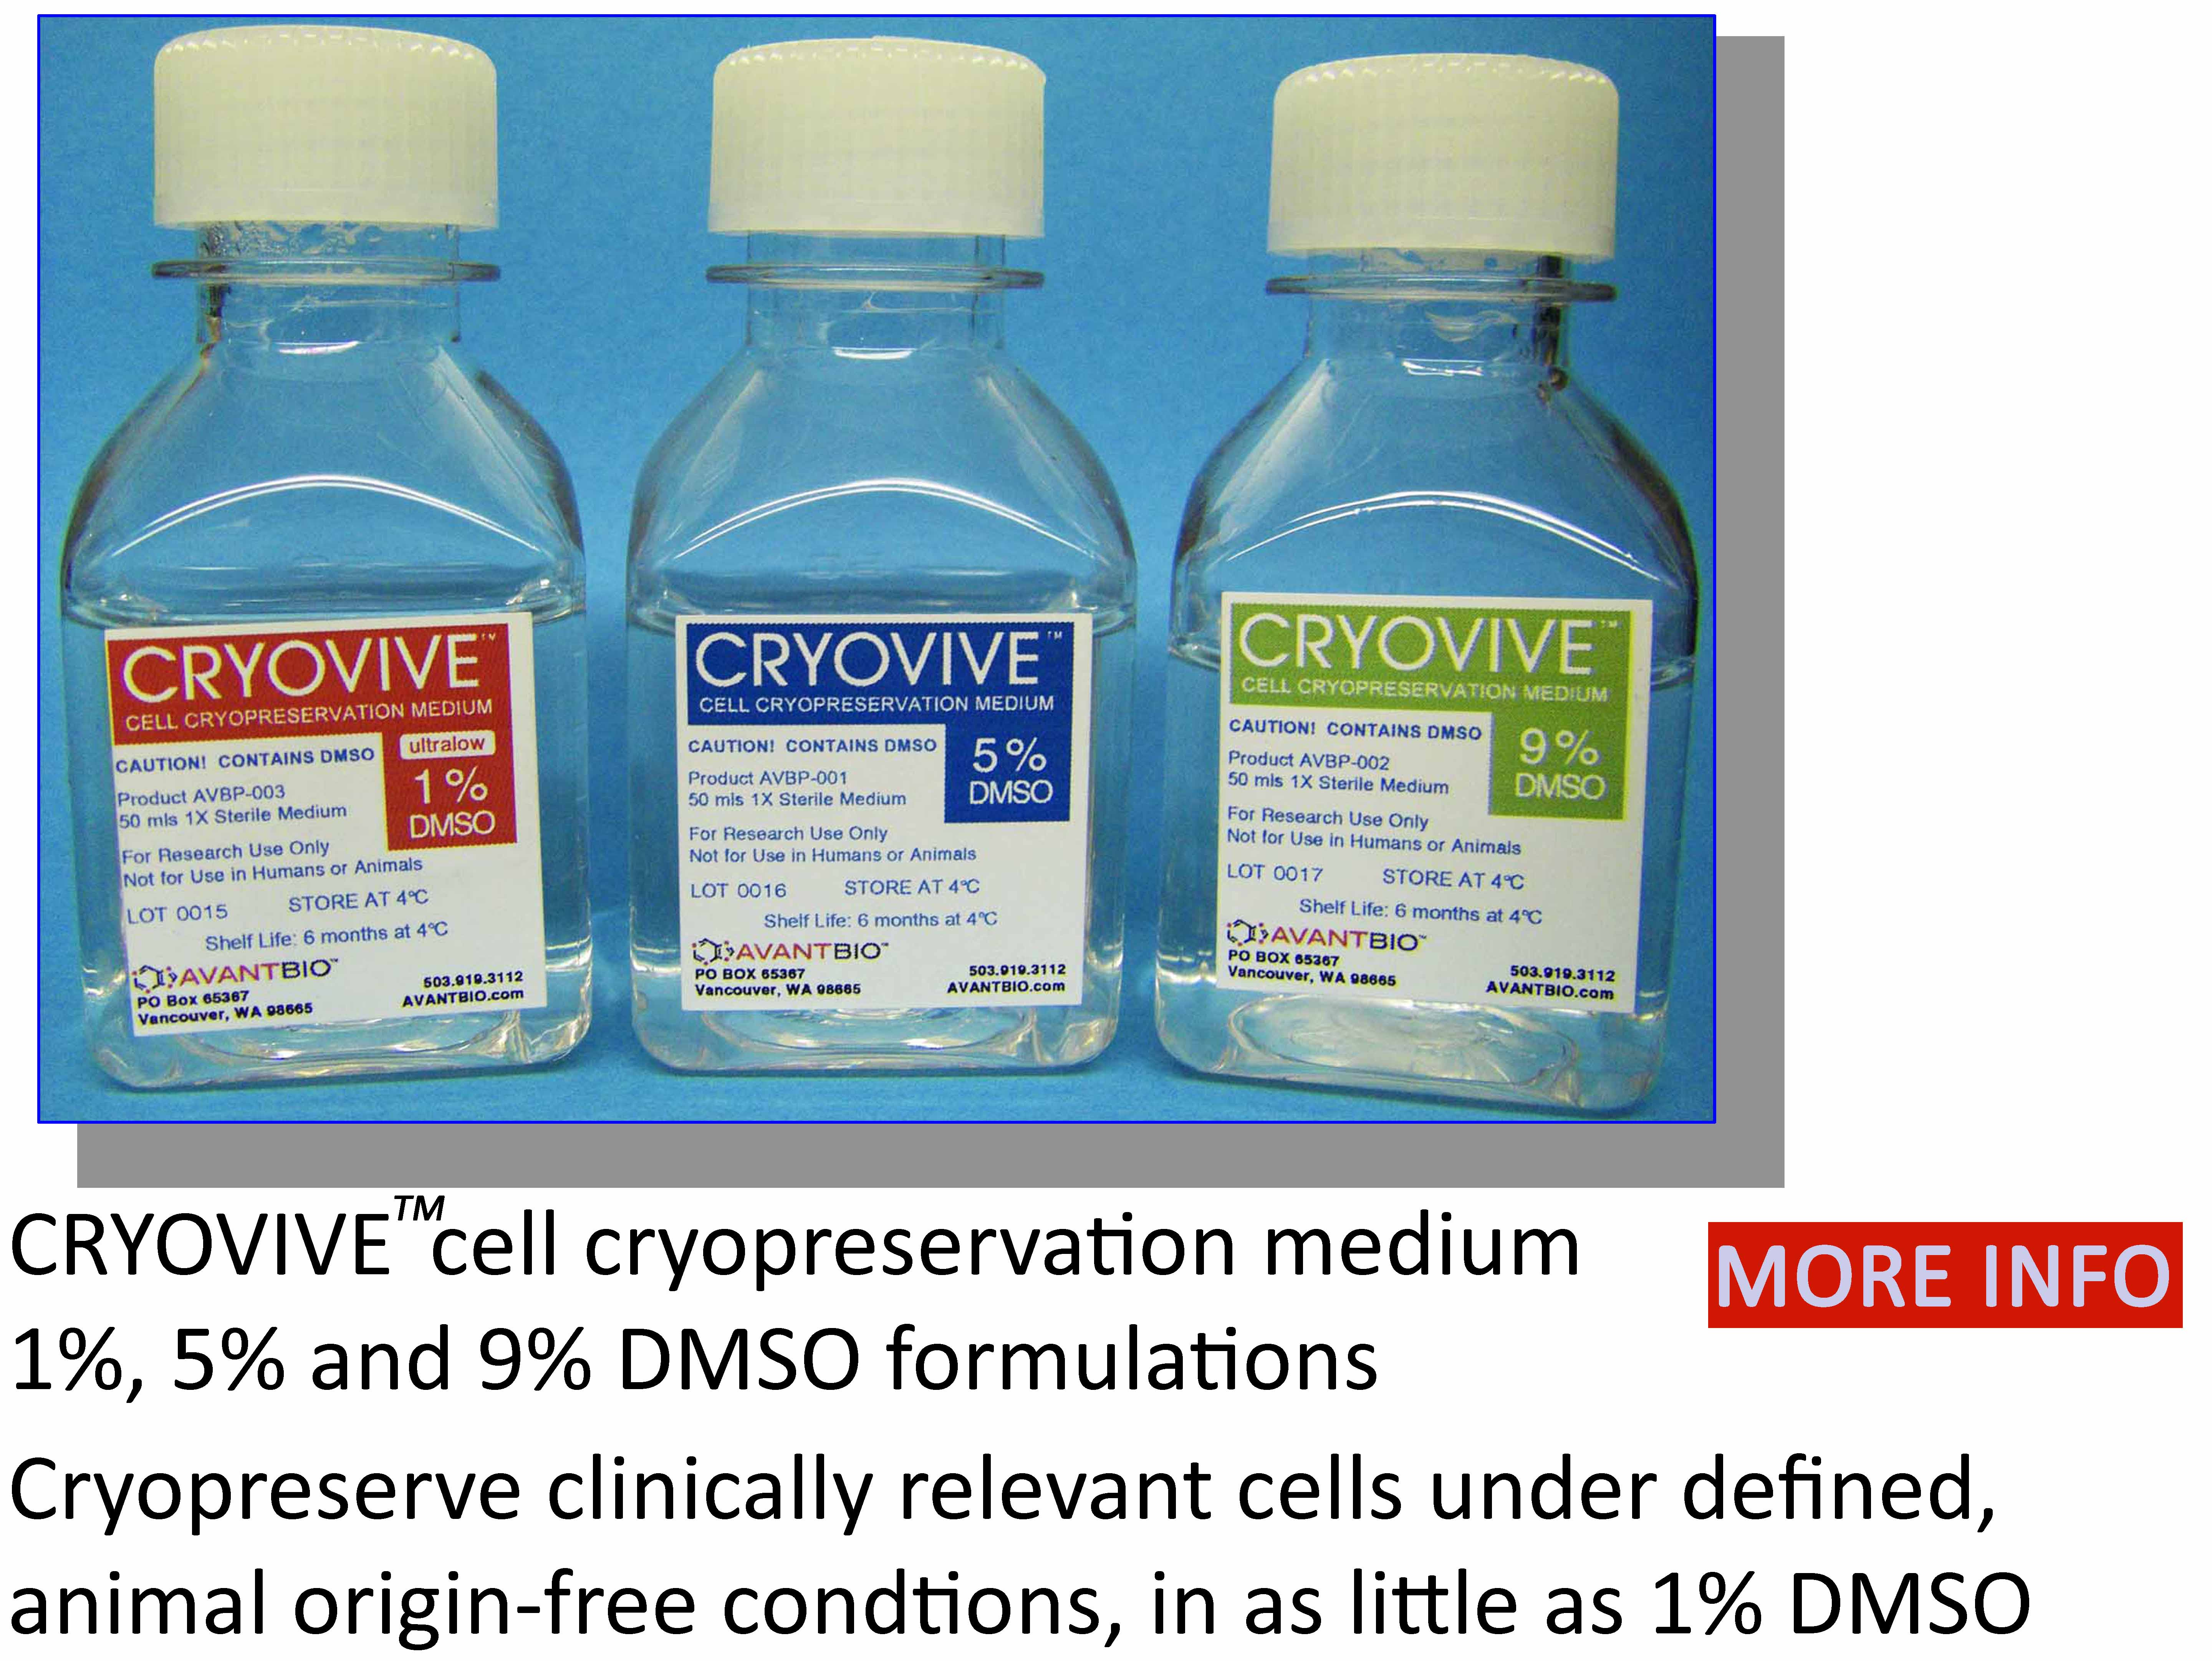 http://avantbio.com/wp-content/uploads/2011-12-08-Cryovive-Rotating-Home-Page-Image-1.jpg